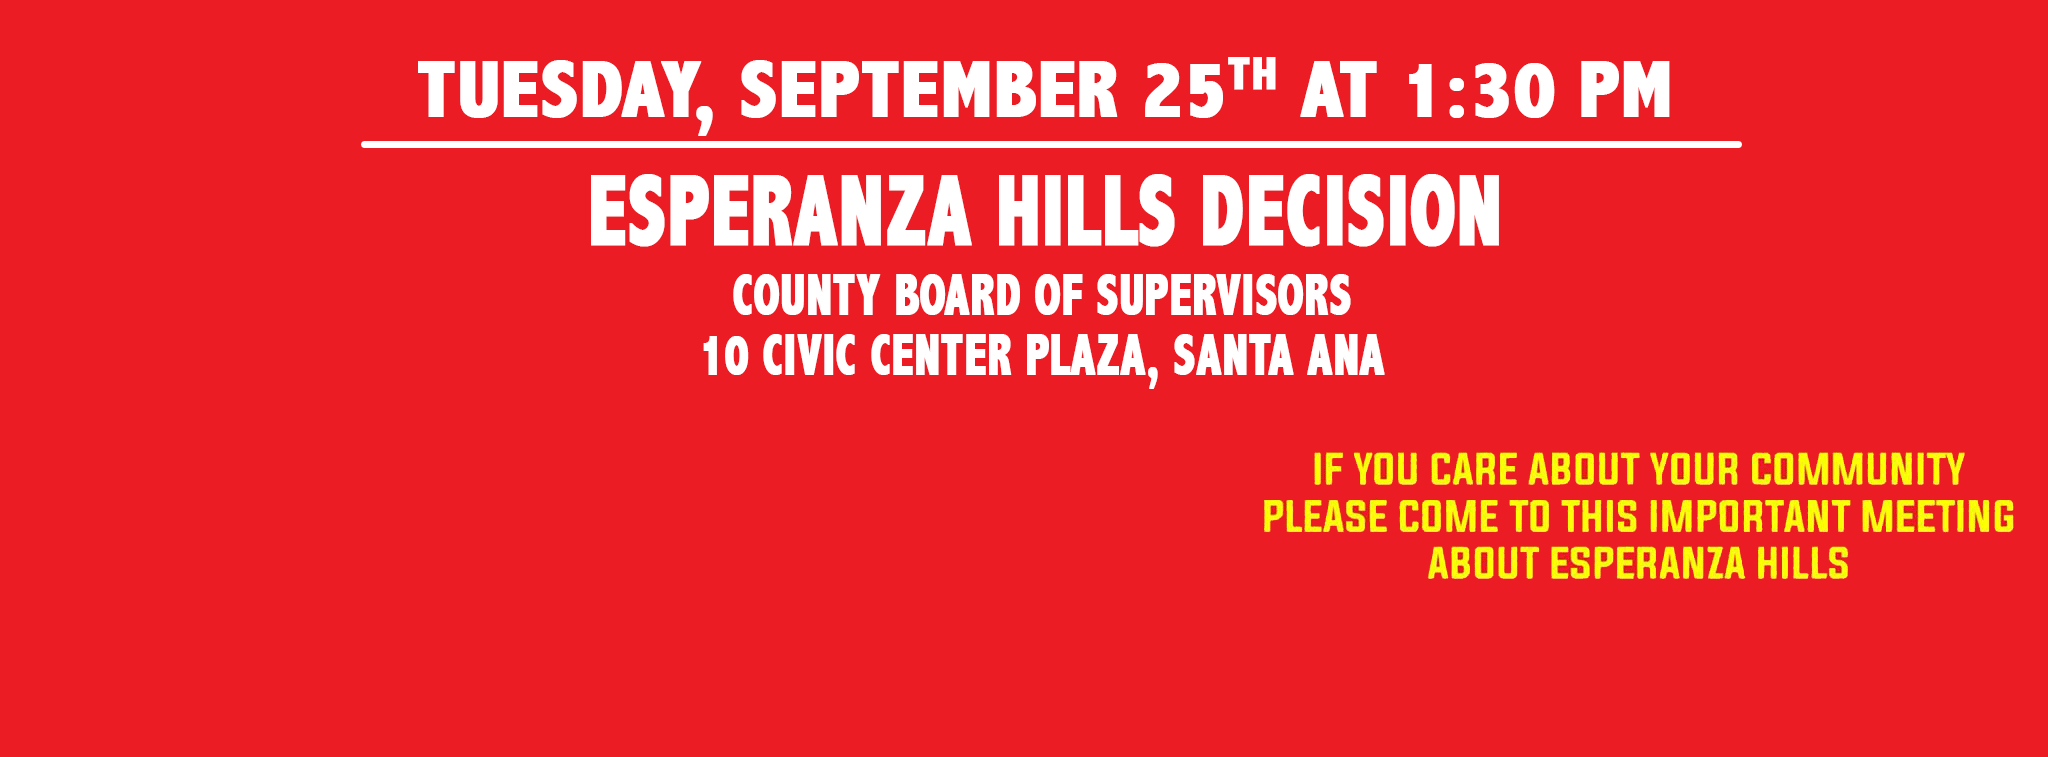 Next Board of Supervisors Public Hearing - September 25, 2018 at 1:30 PM